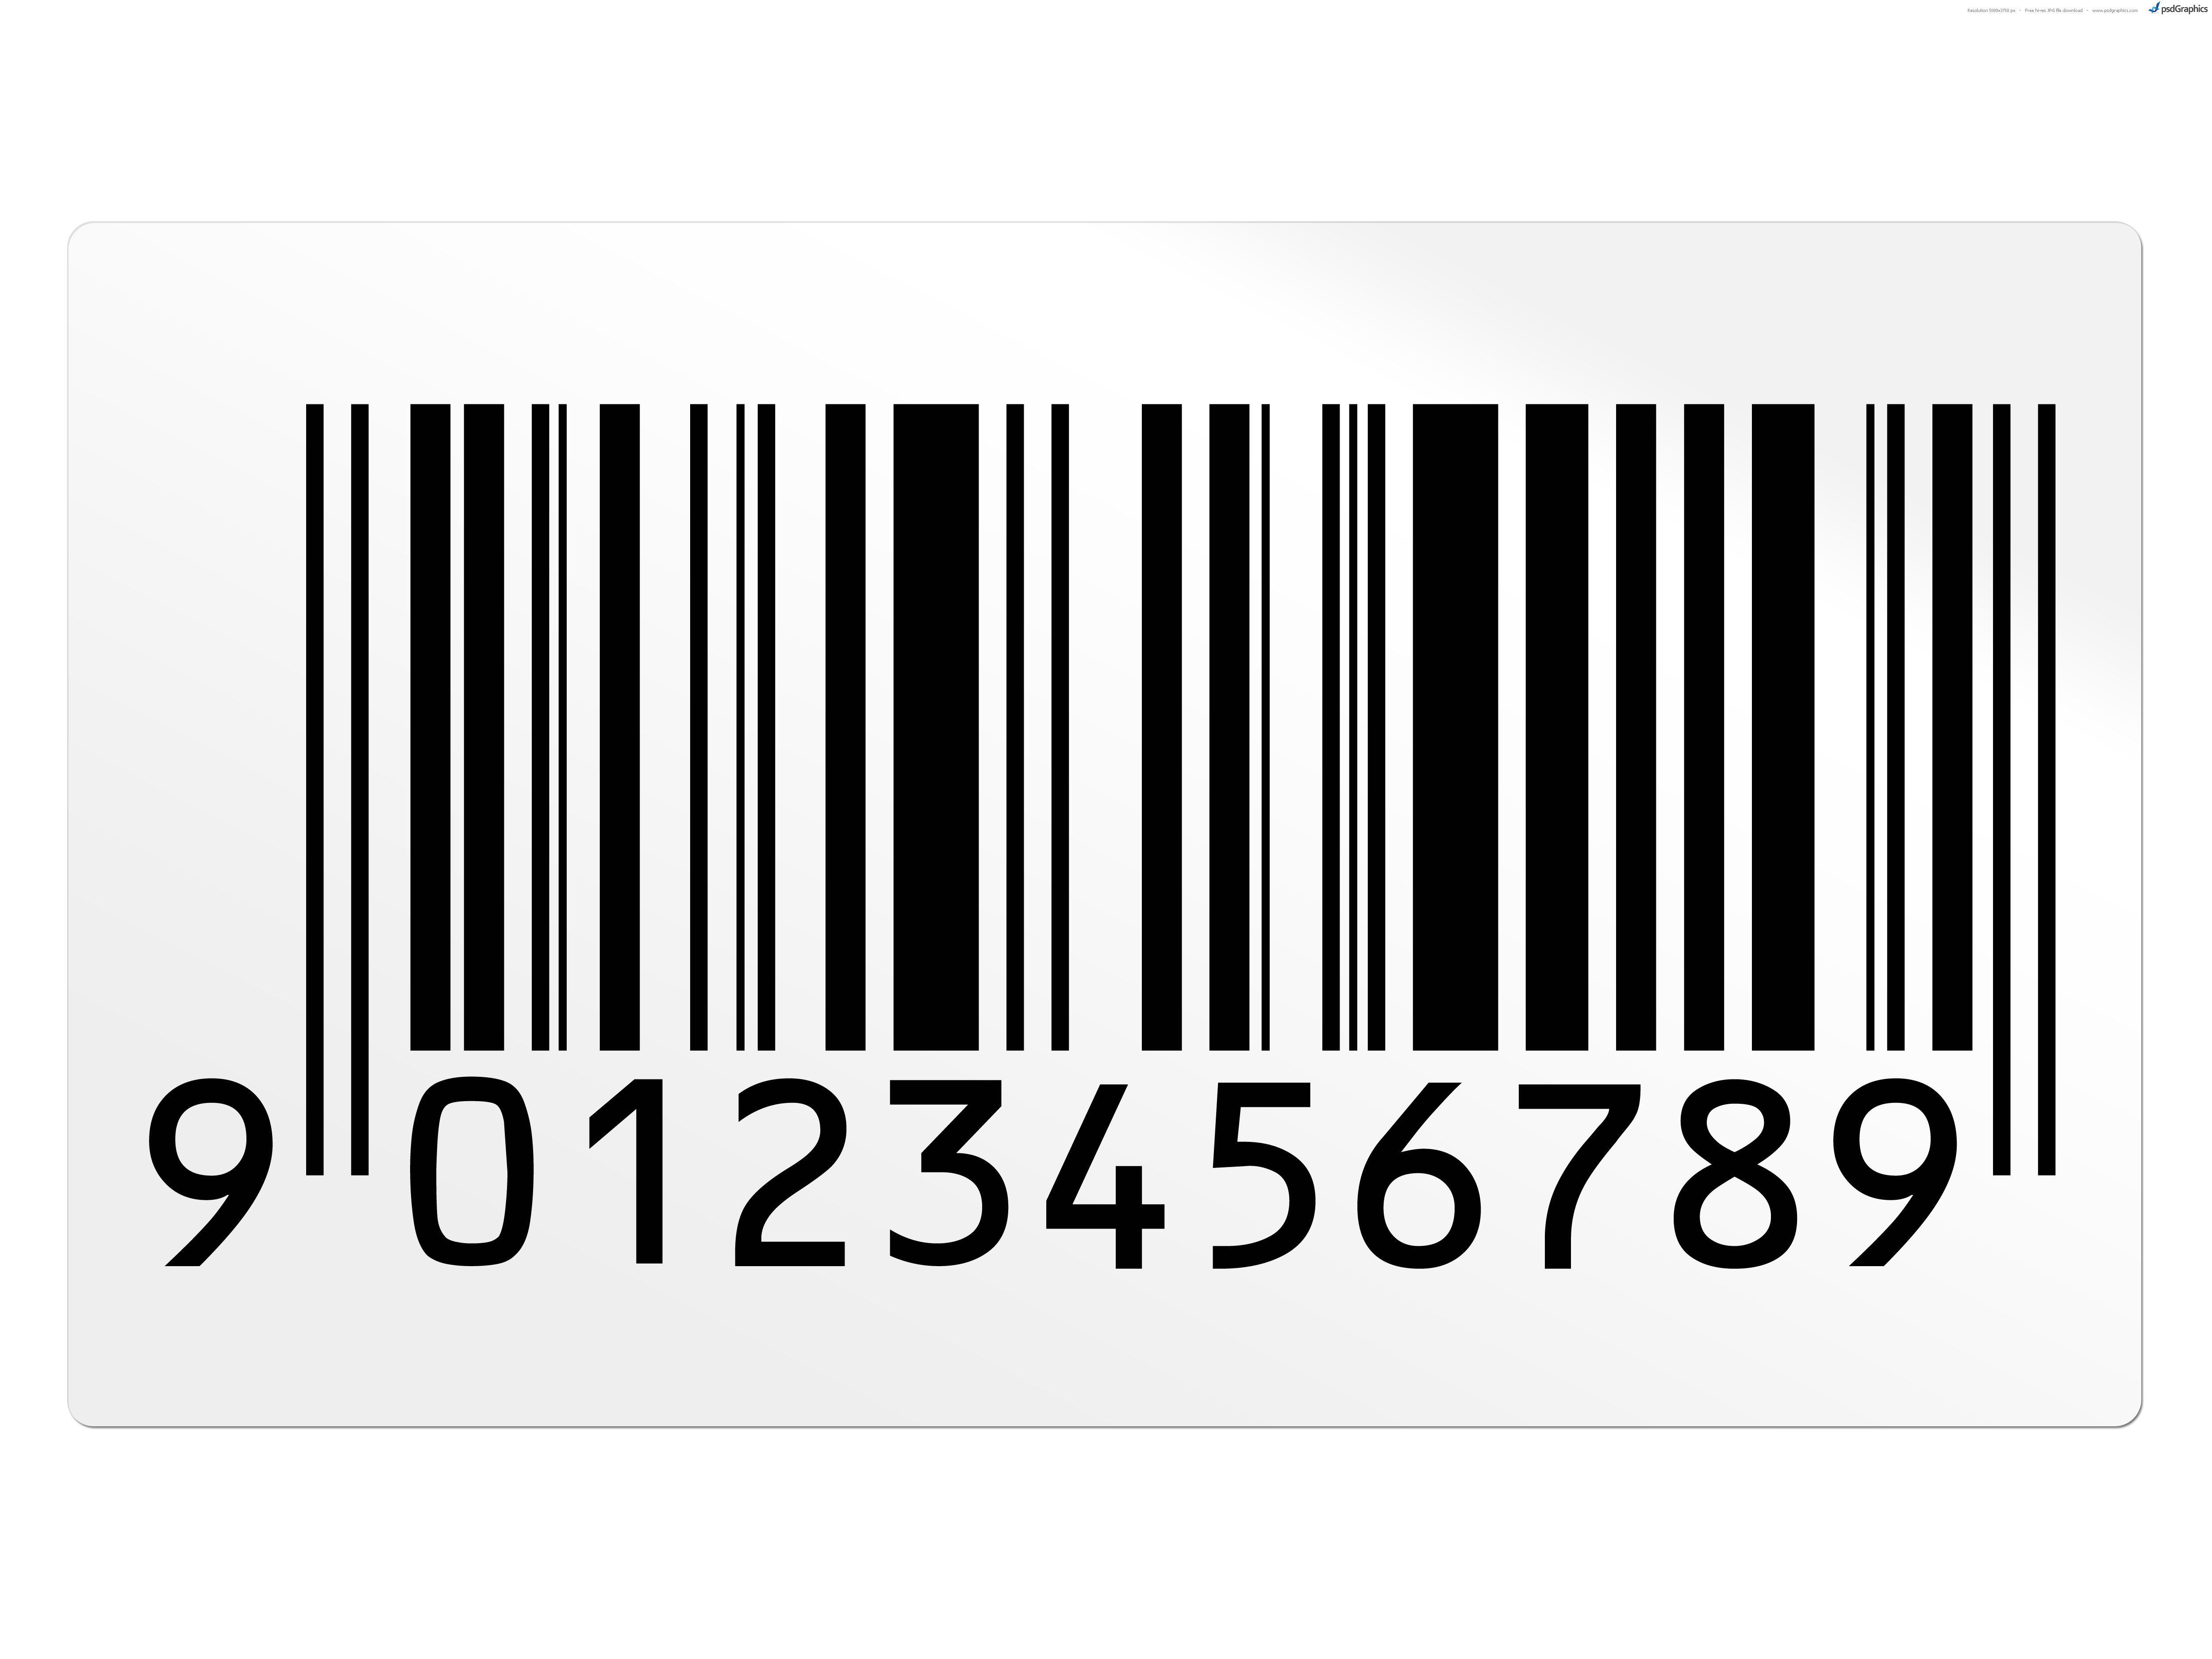 Barcode font graphics psdgraphics for Barcode food